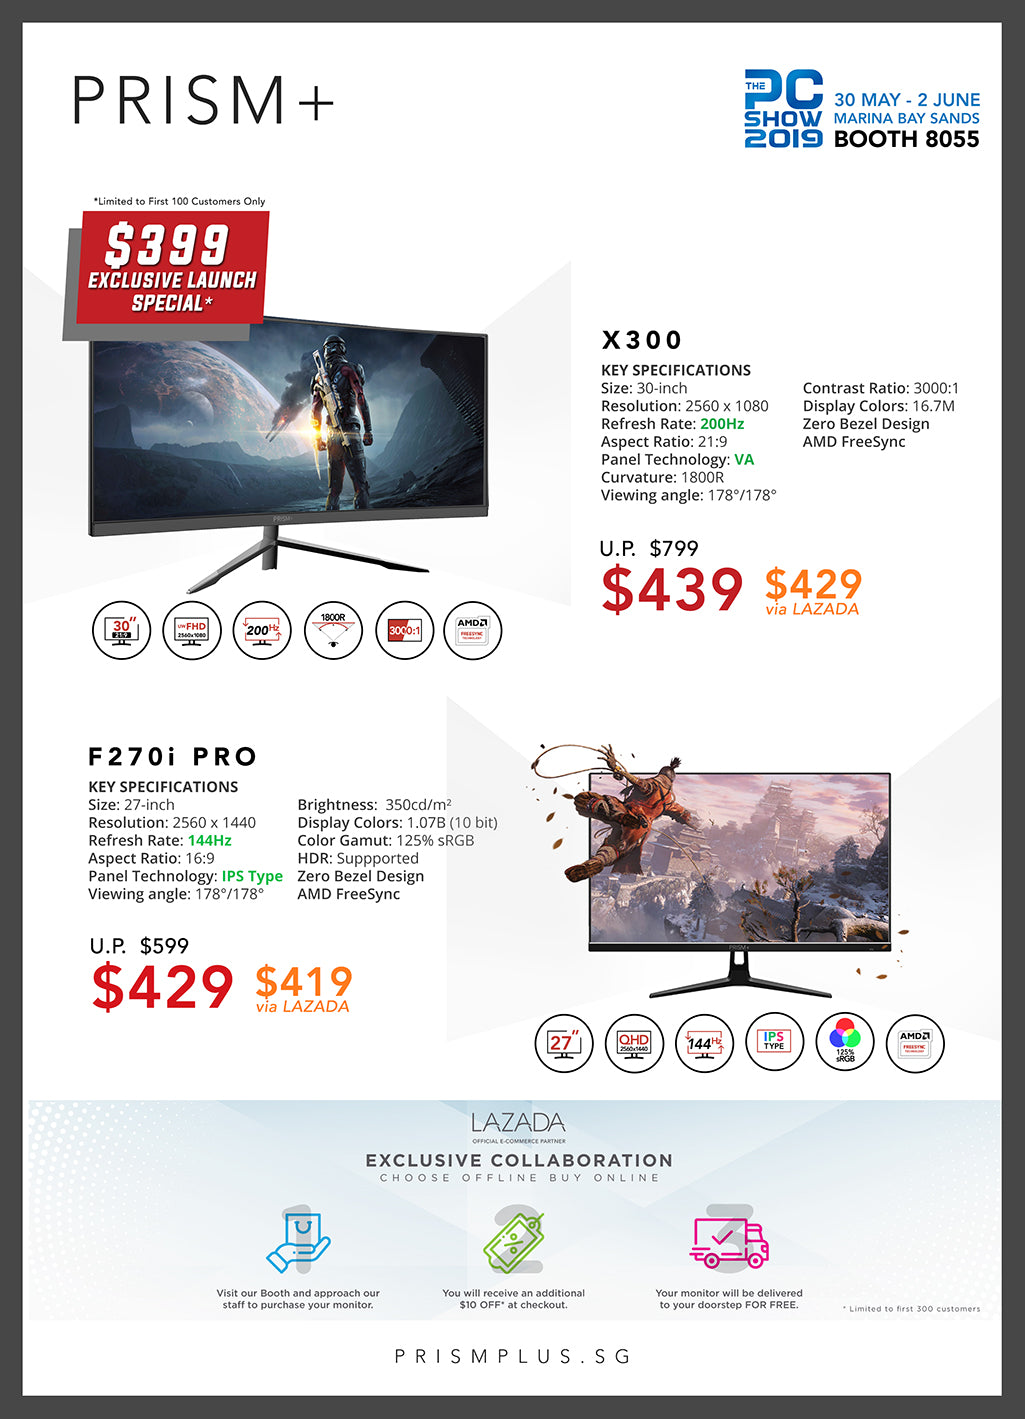 PC Show 2019 Brochure Page 1 (X300 + F270i PRO)